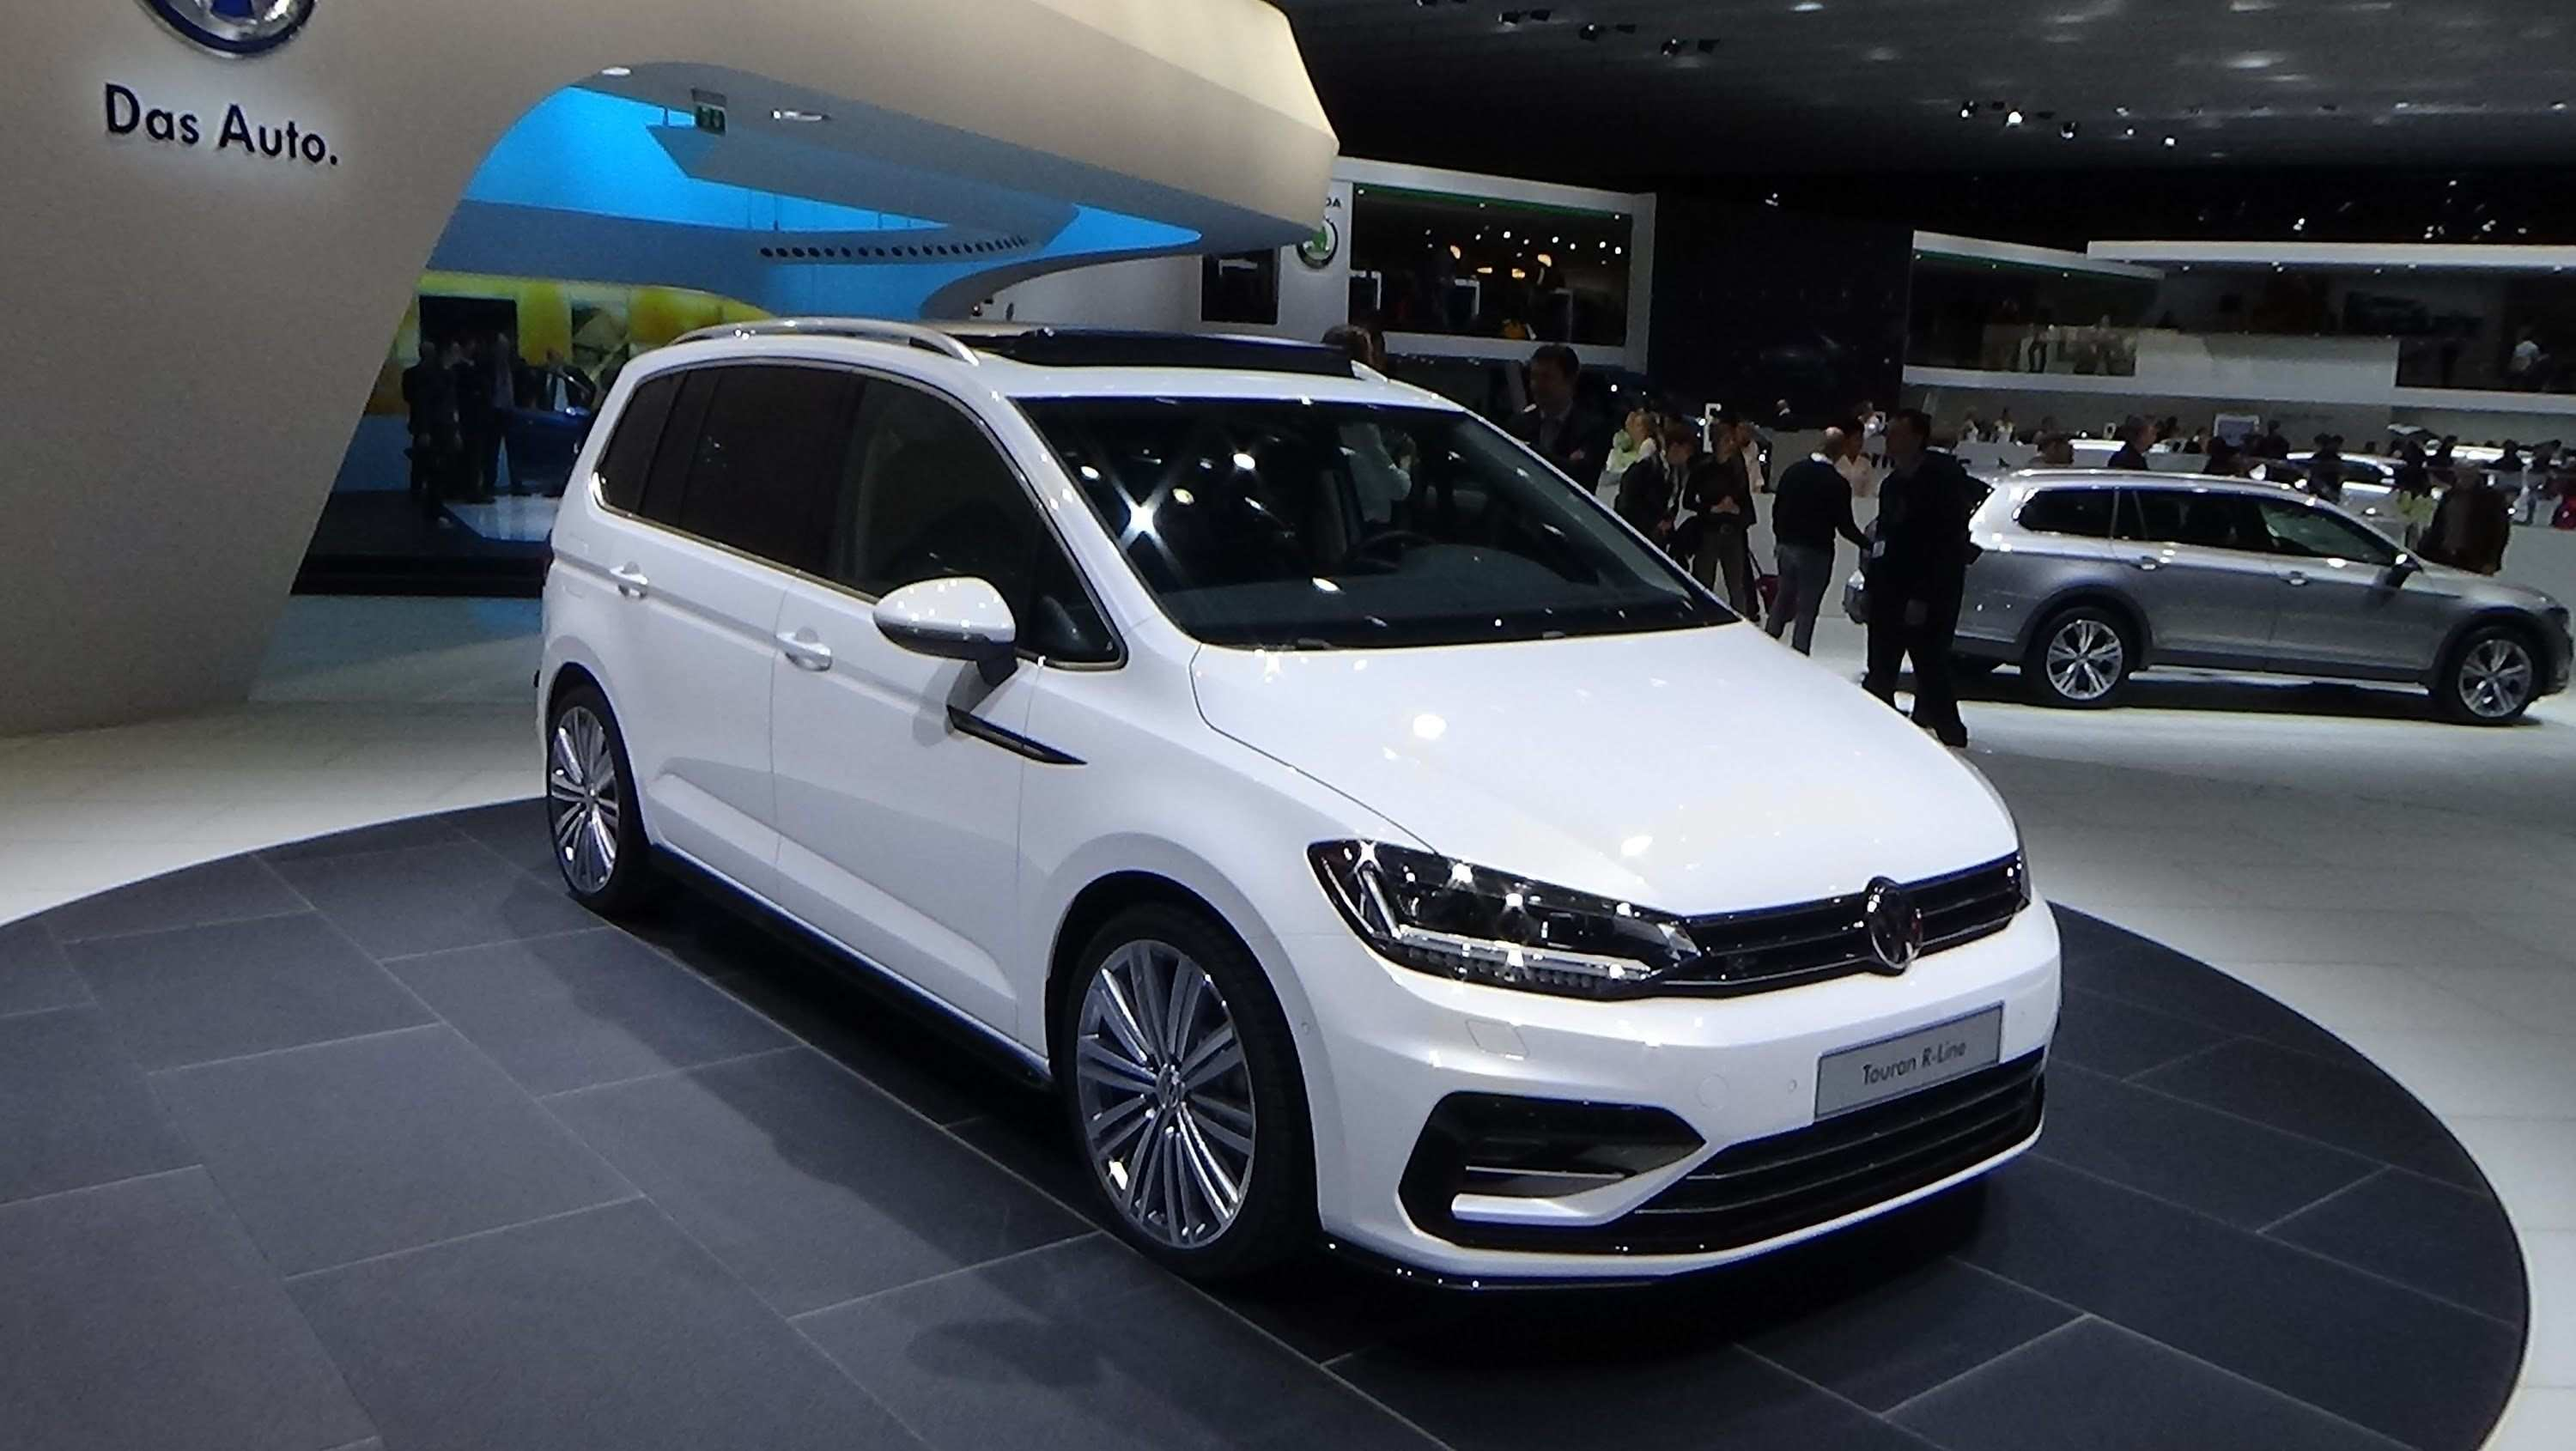 74 New Volkswagen Touran 2020 Research New by Volkswagen Touran 2020